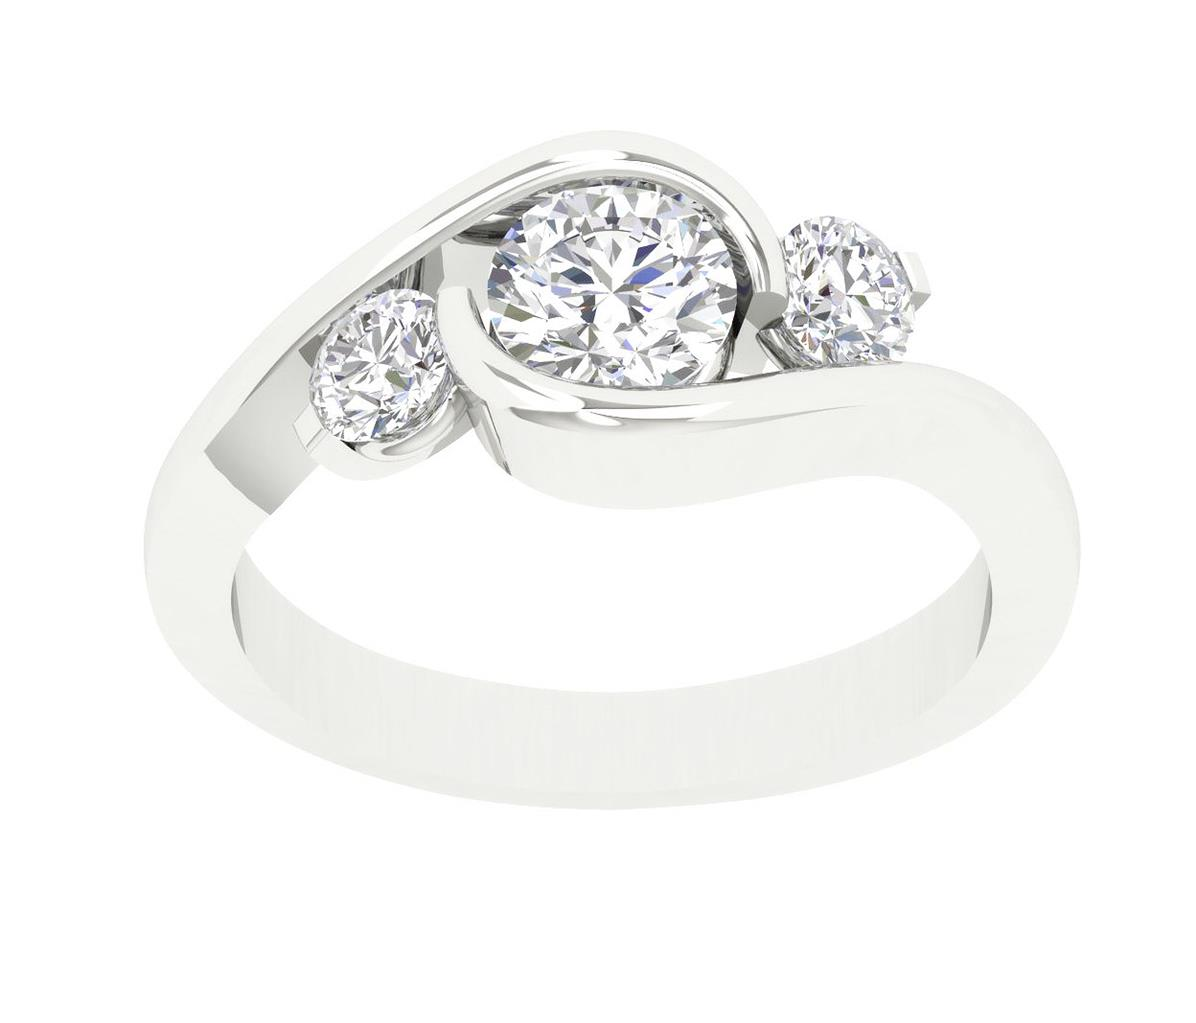 Excellent SI1/G Natural 1.00Ct Diamond 3 Stone Engagement